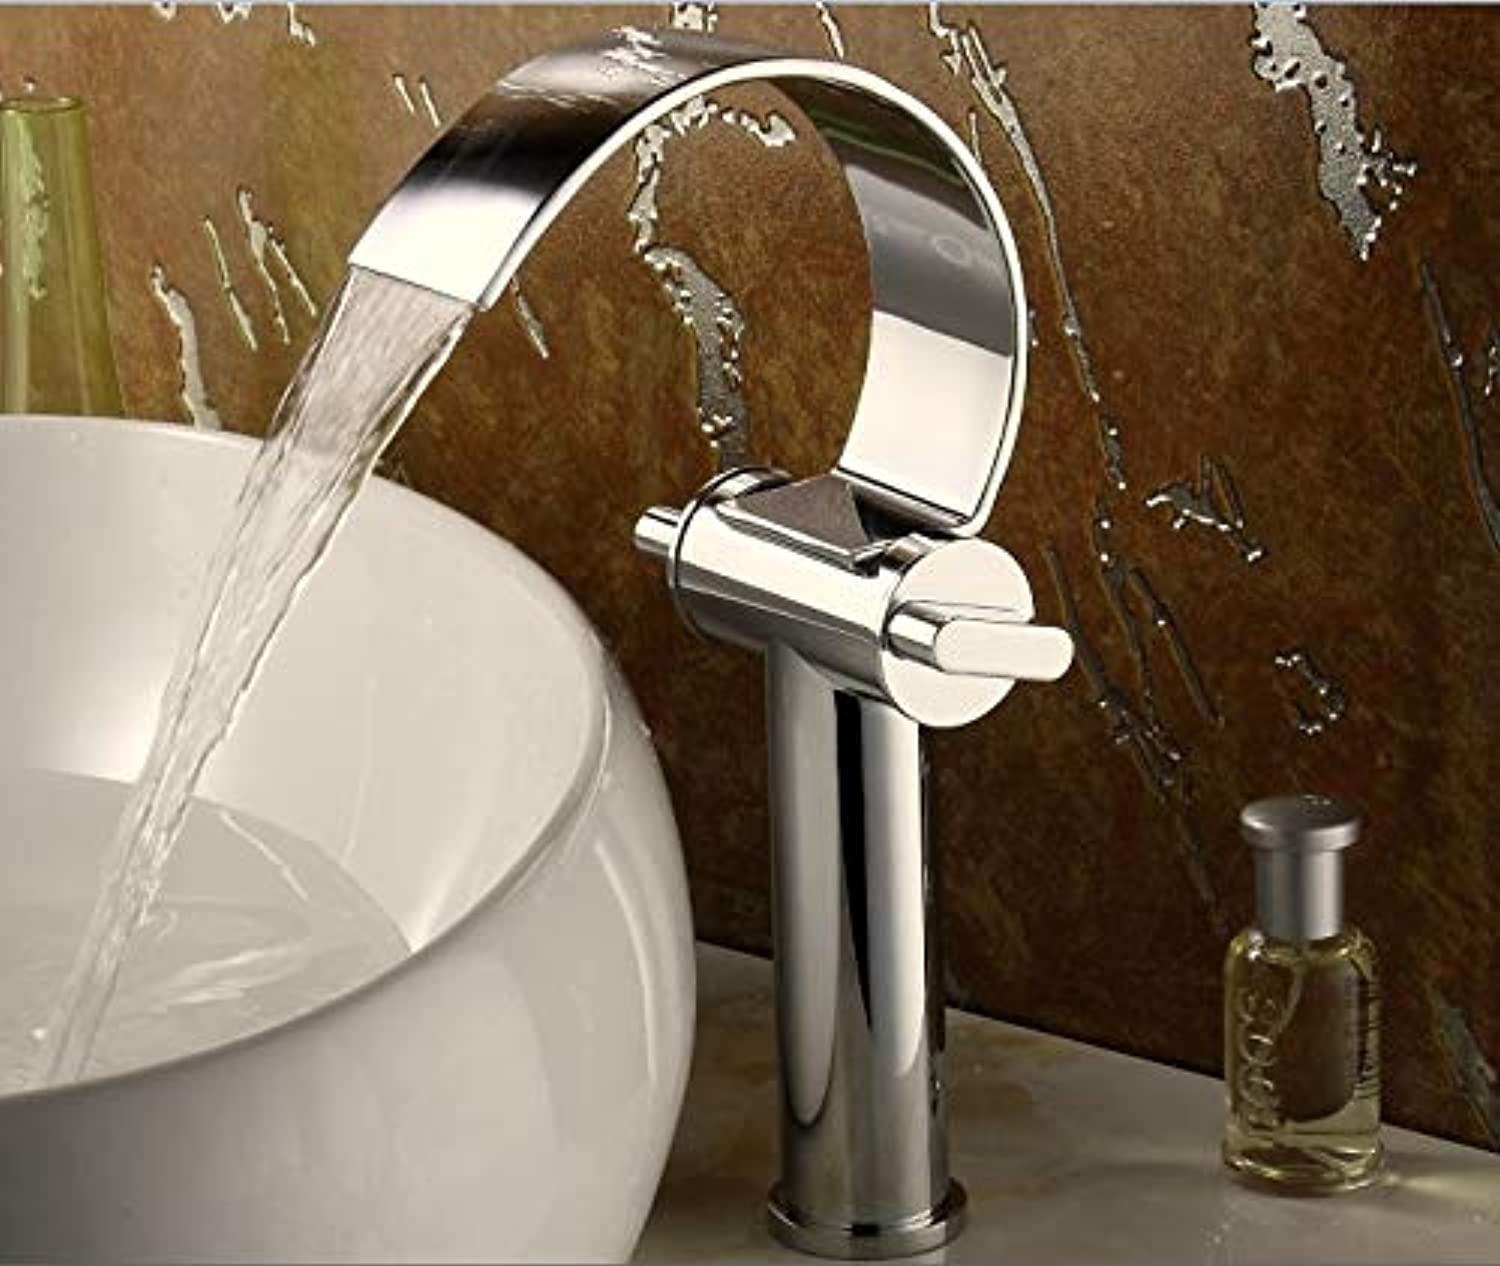 Tall Bathroom Waterfall Faucet Double Single Hole Basin Faucet Chrome Brass Cold and hot Water Washing Faucet Mixer tap,208A